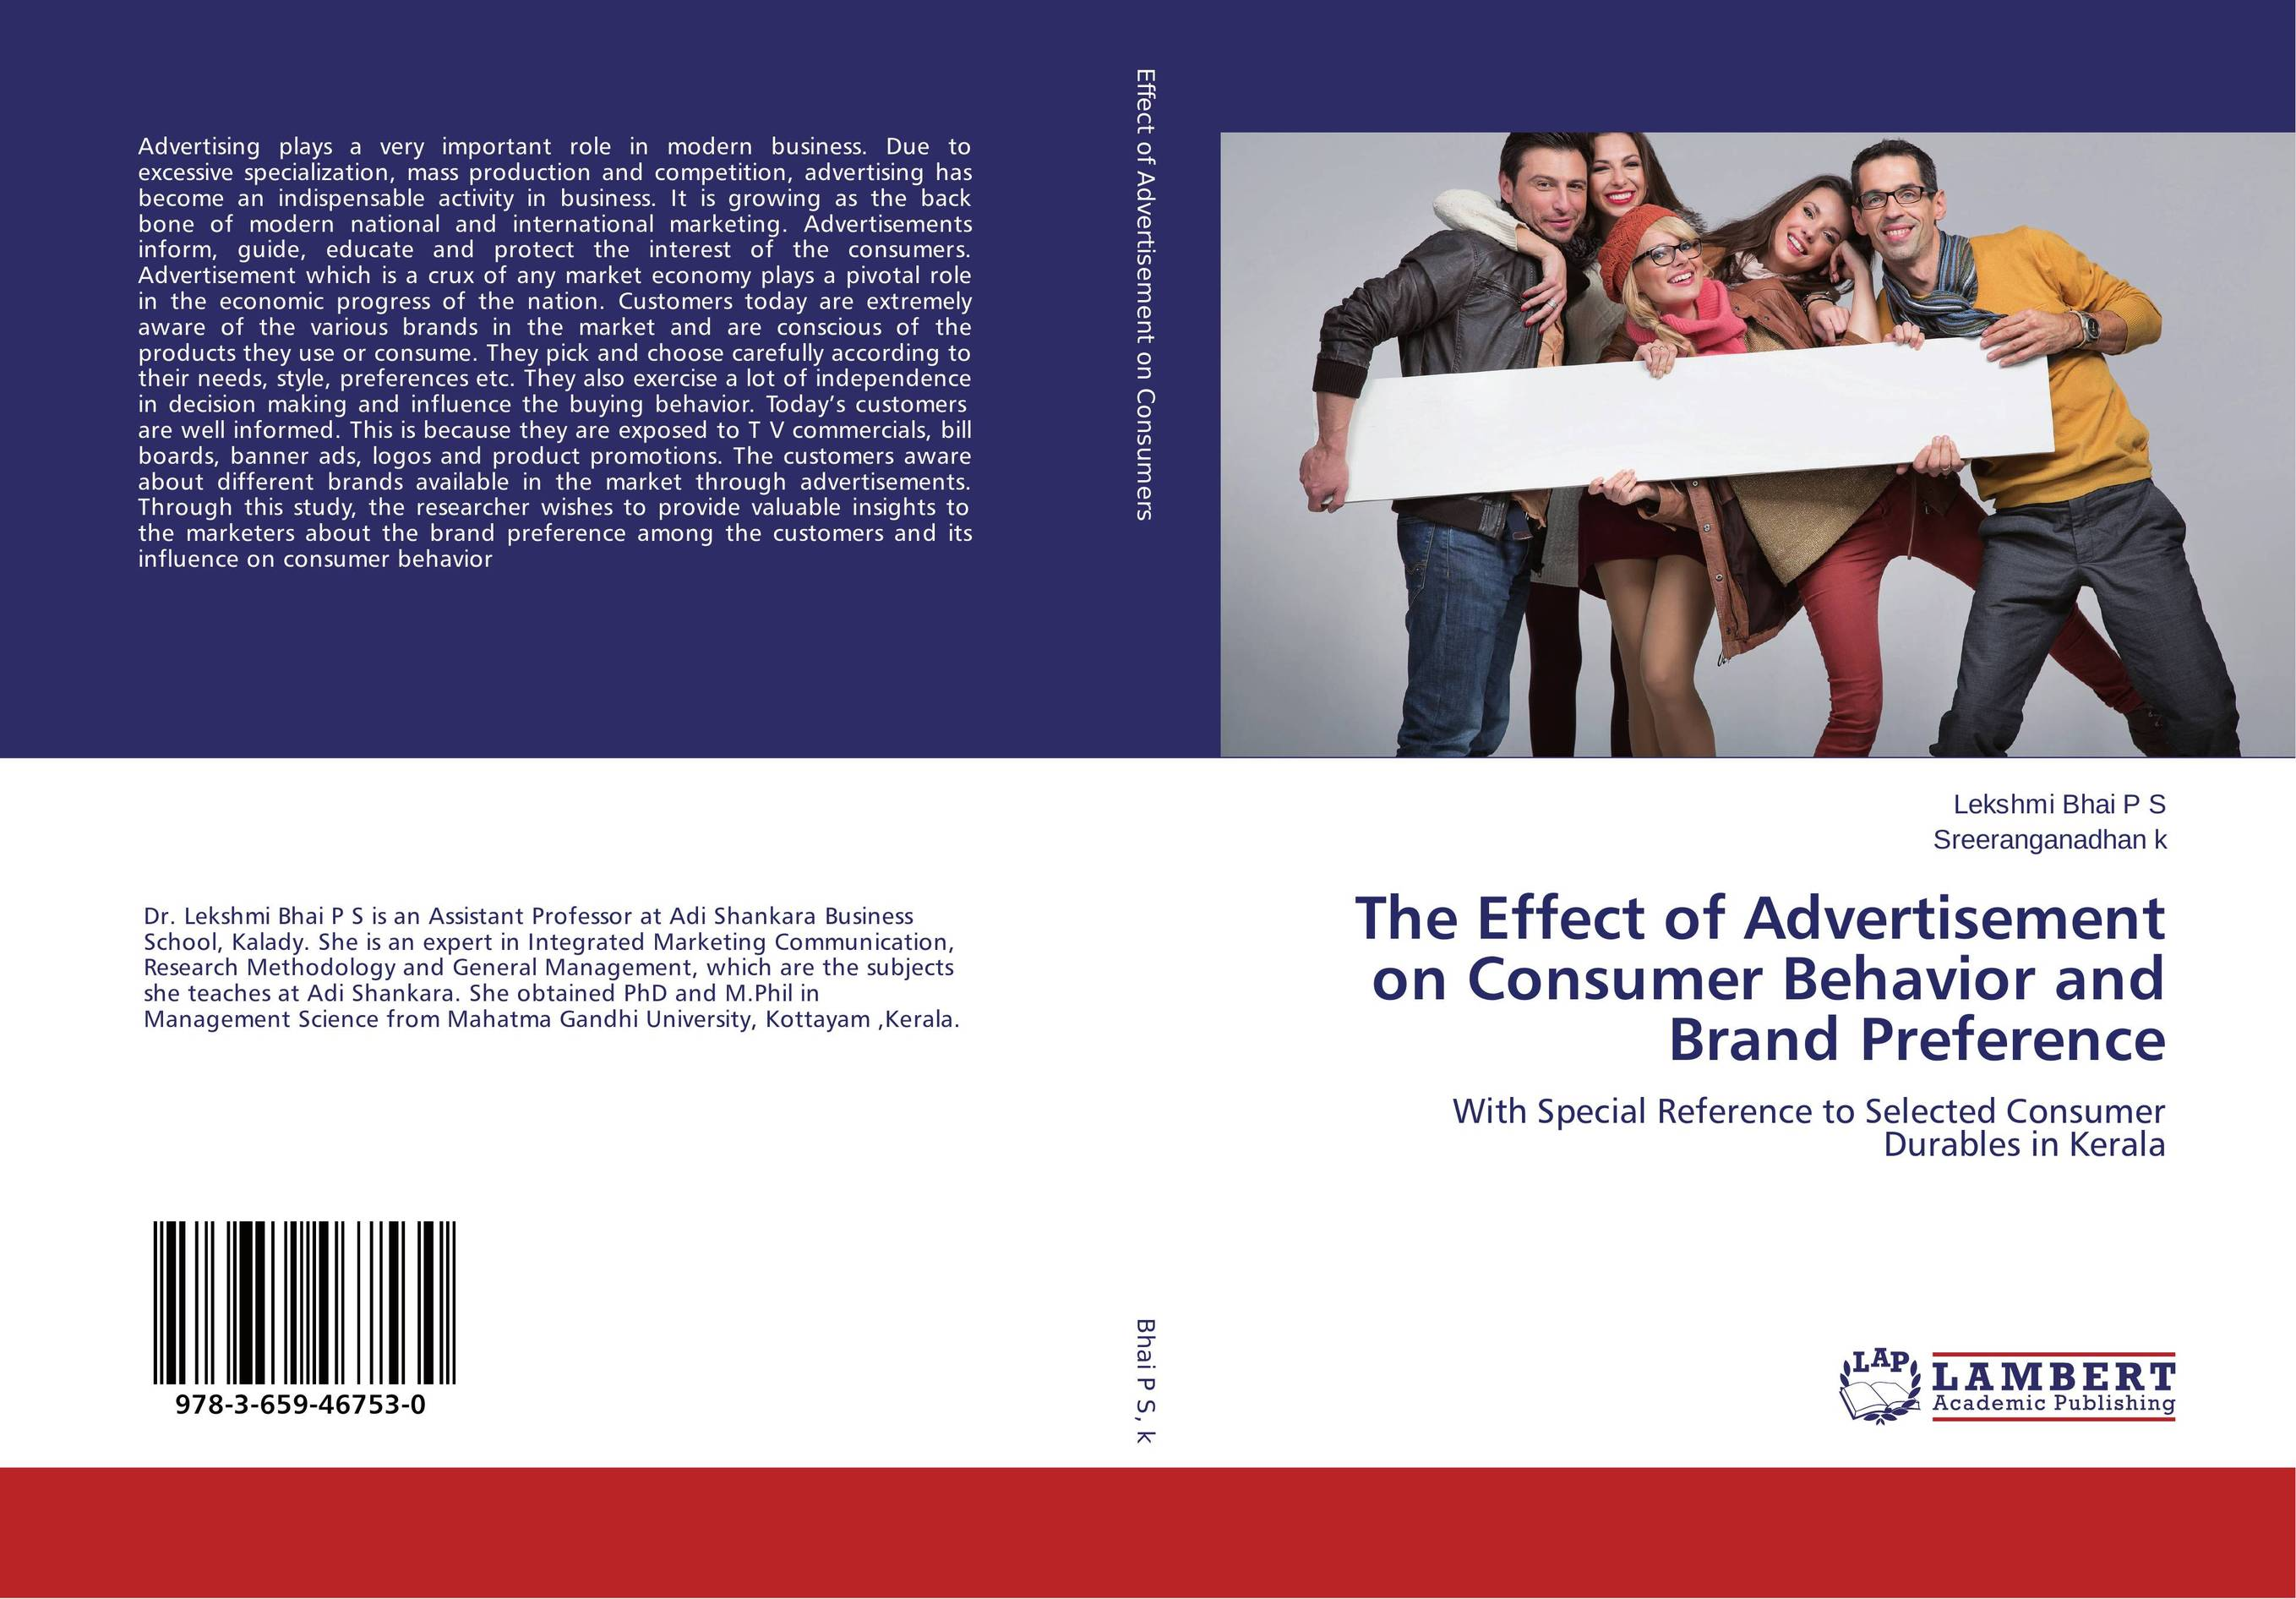 The Effect of Advertisement on Consumer Behavior and Brand Preference the effect of advertisement on consumer behavior and brand preference